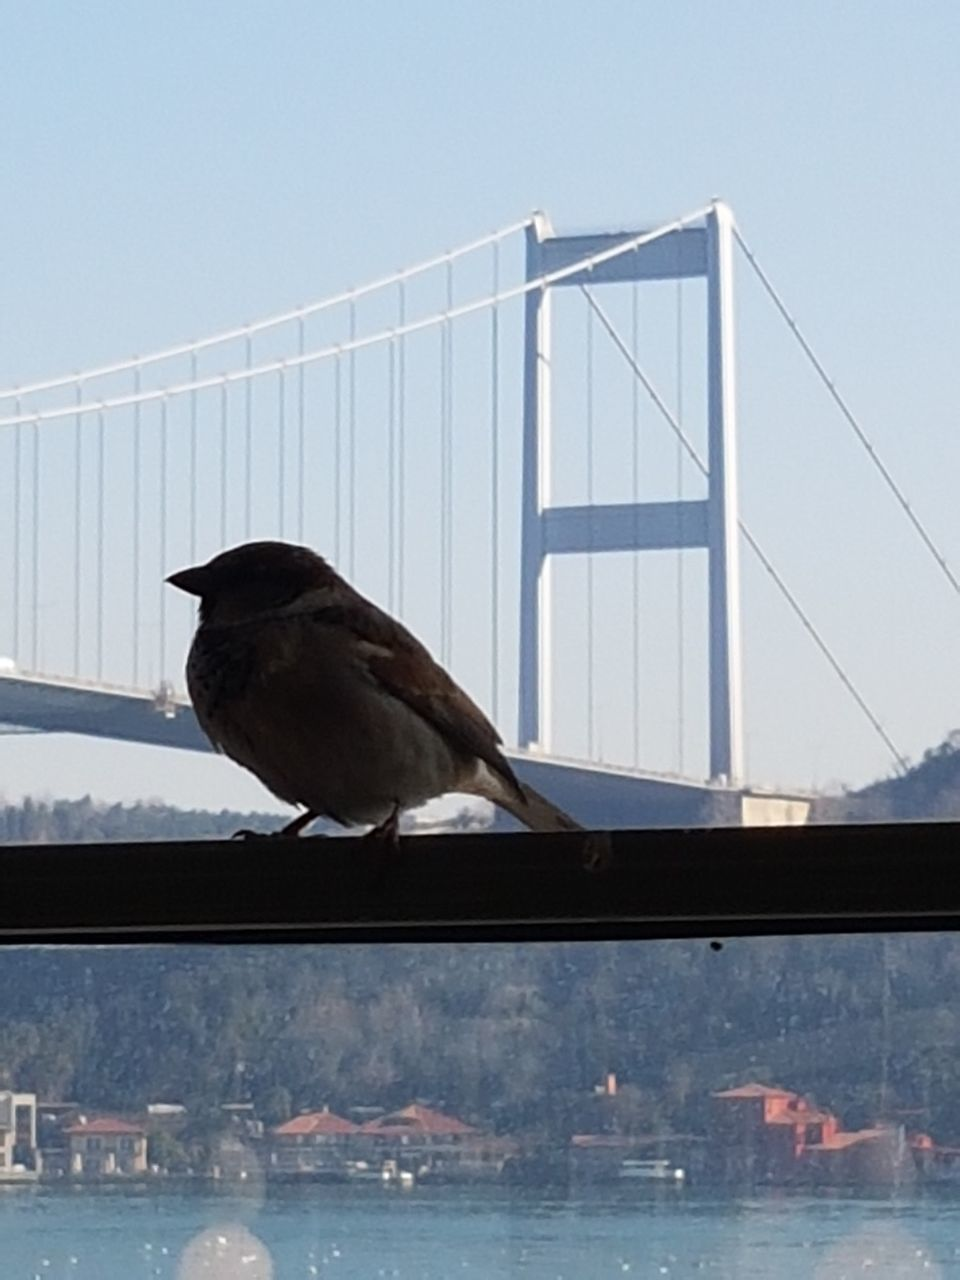 bird, animal themes, one animal, animals in the wild, railing, day, no people, animal wildlife, bridge - man made structure, outdoors, perching, clear sky, suspension bridge, nature, water, sea, architecture, sky, close-up